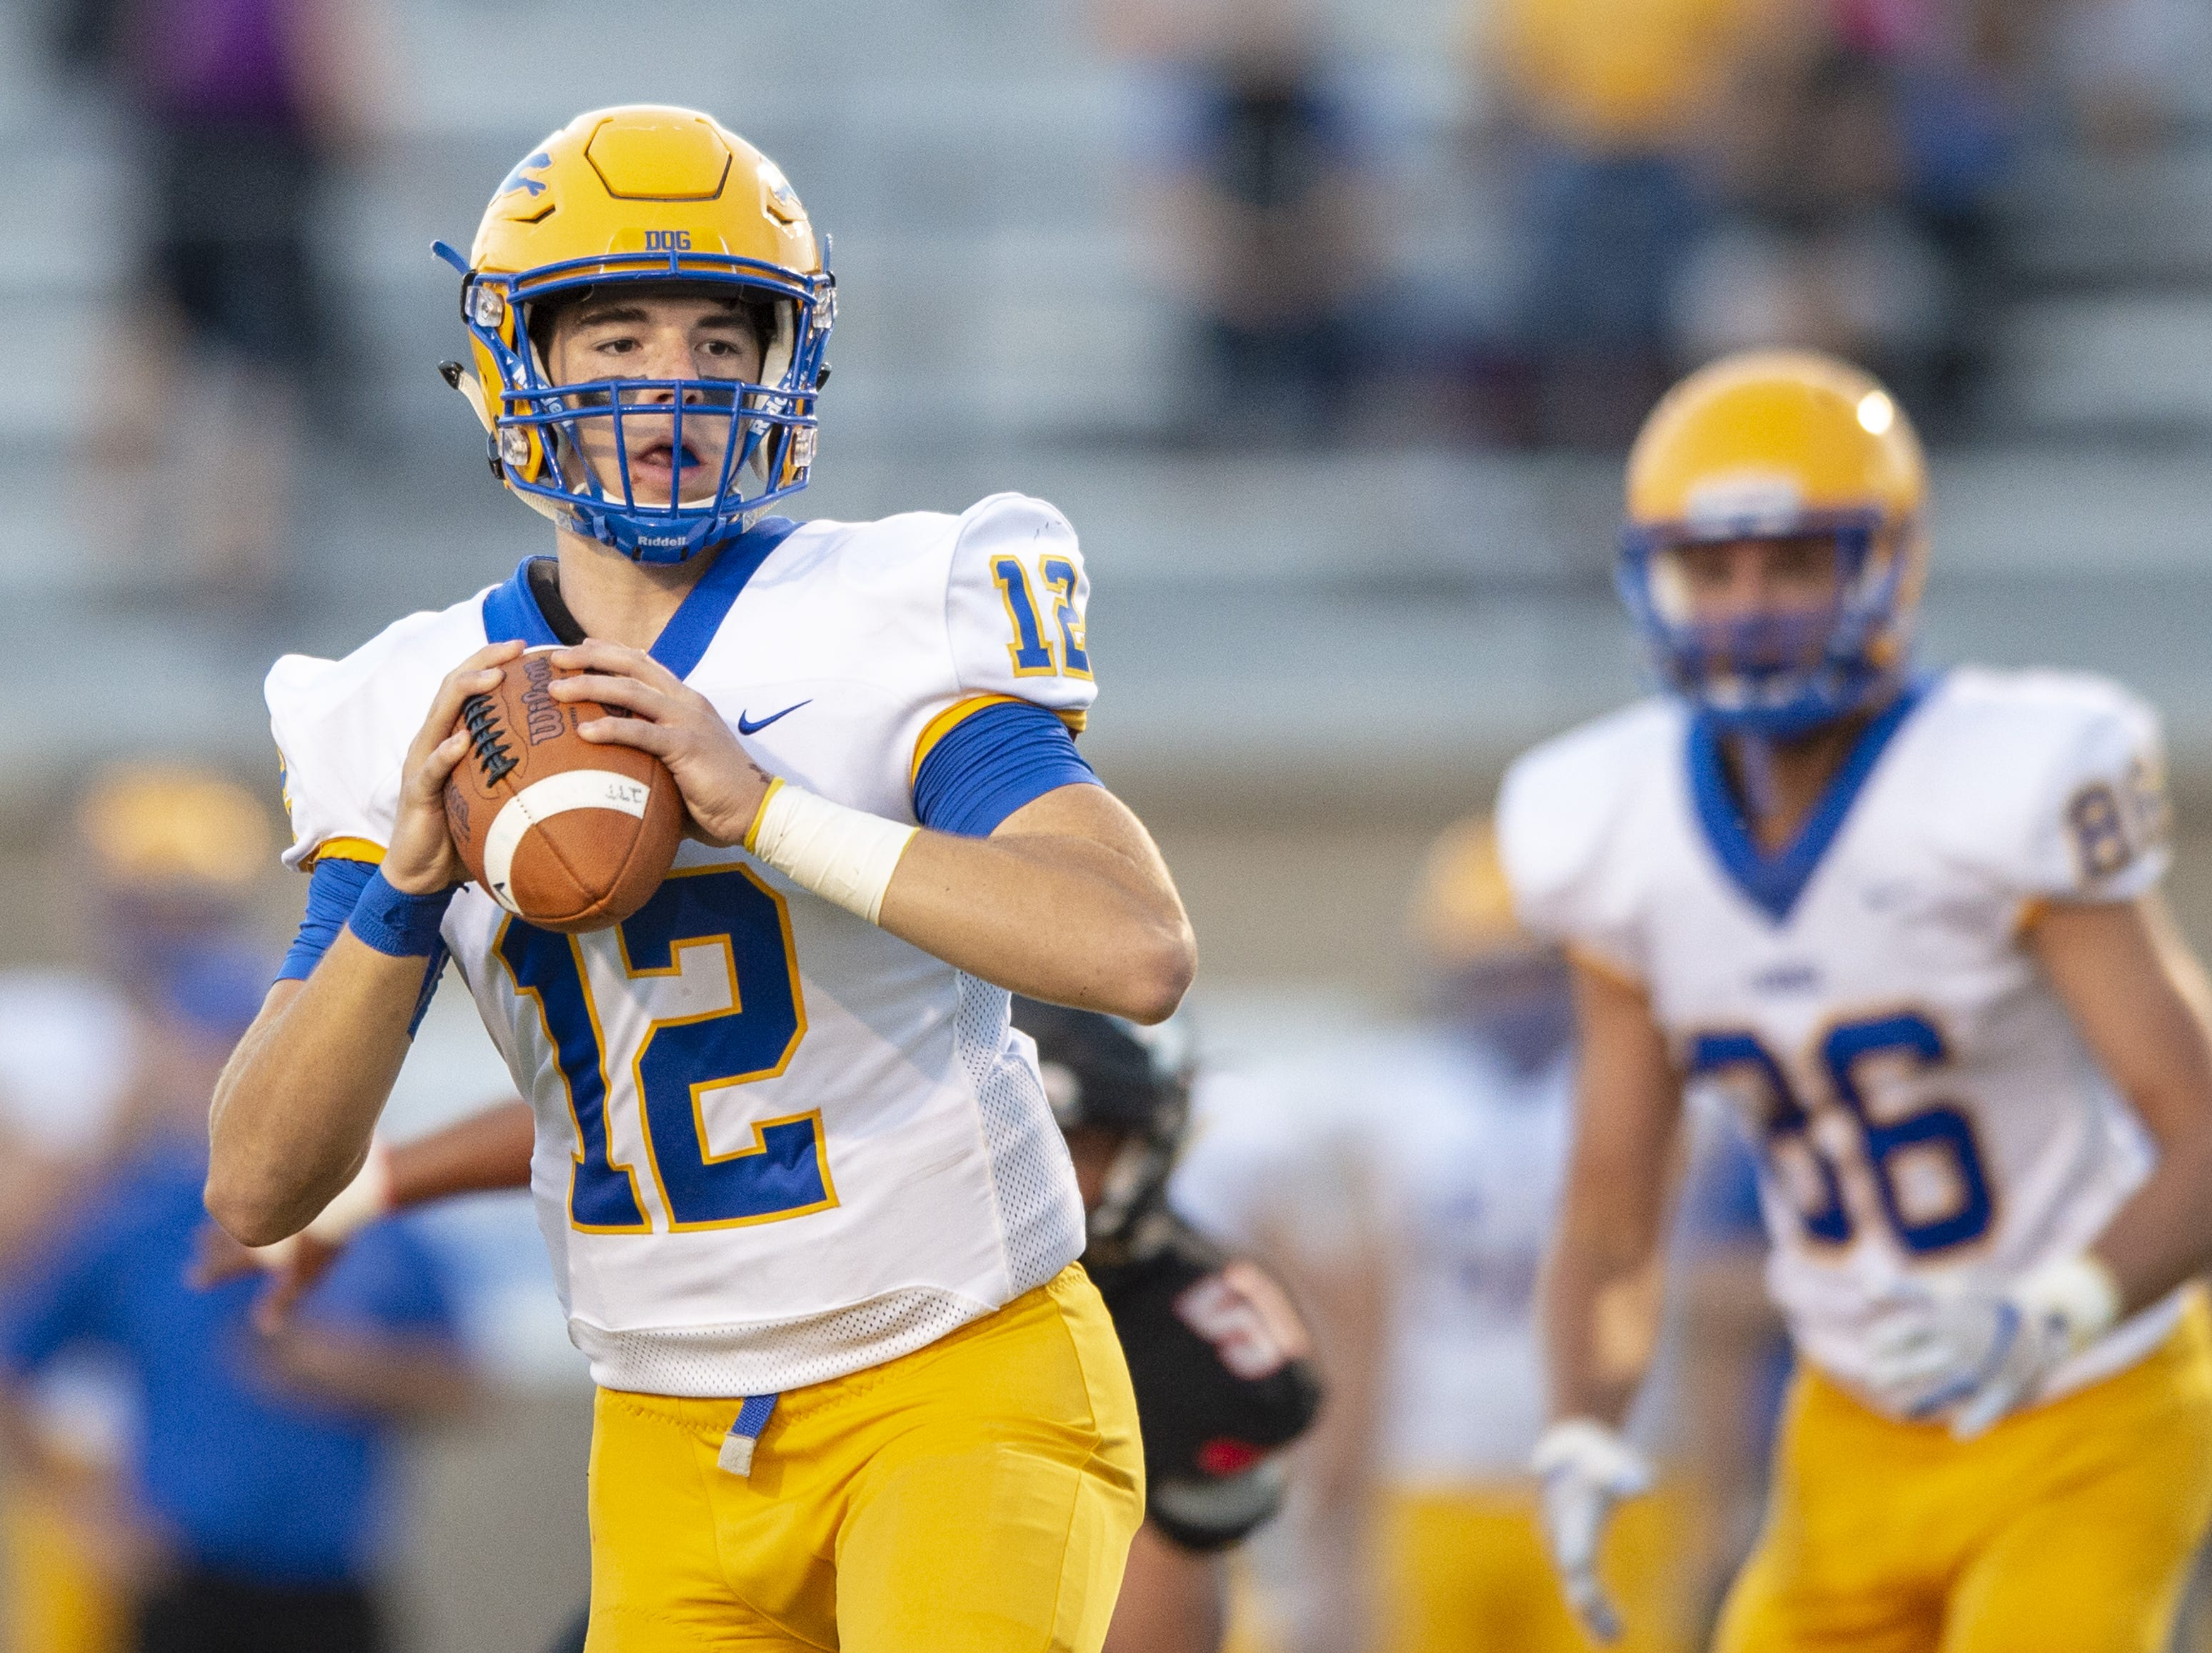 Carmel High School senior Tyler Trent (12) drops back to pass during the first half of action. North Central High School hosted Carmel High School in IHSAA varsity football action, Friday, Sept. 21, 2018.